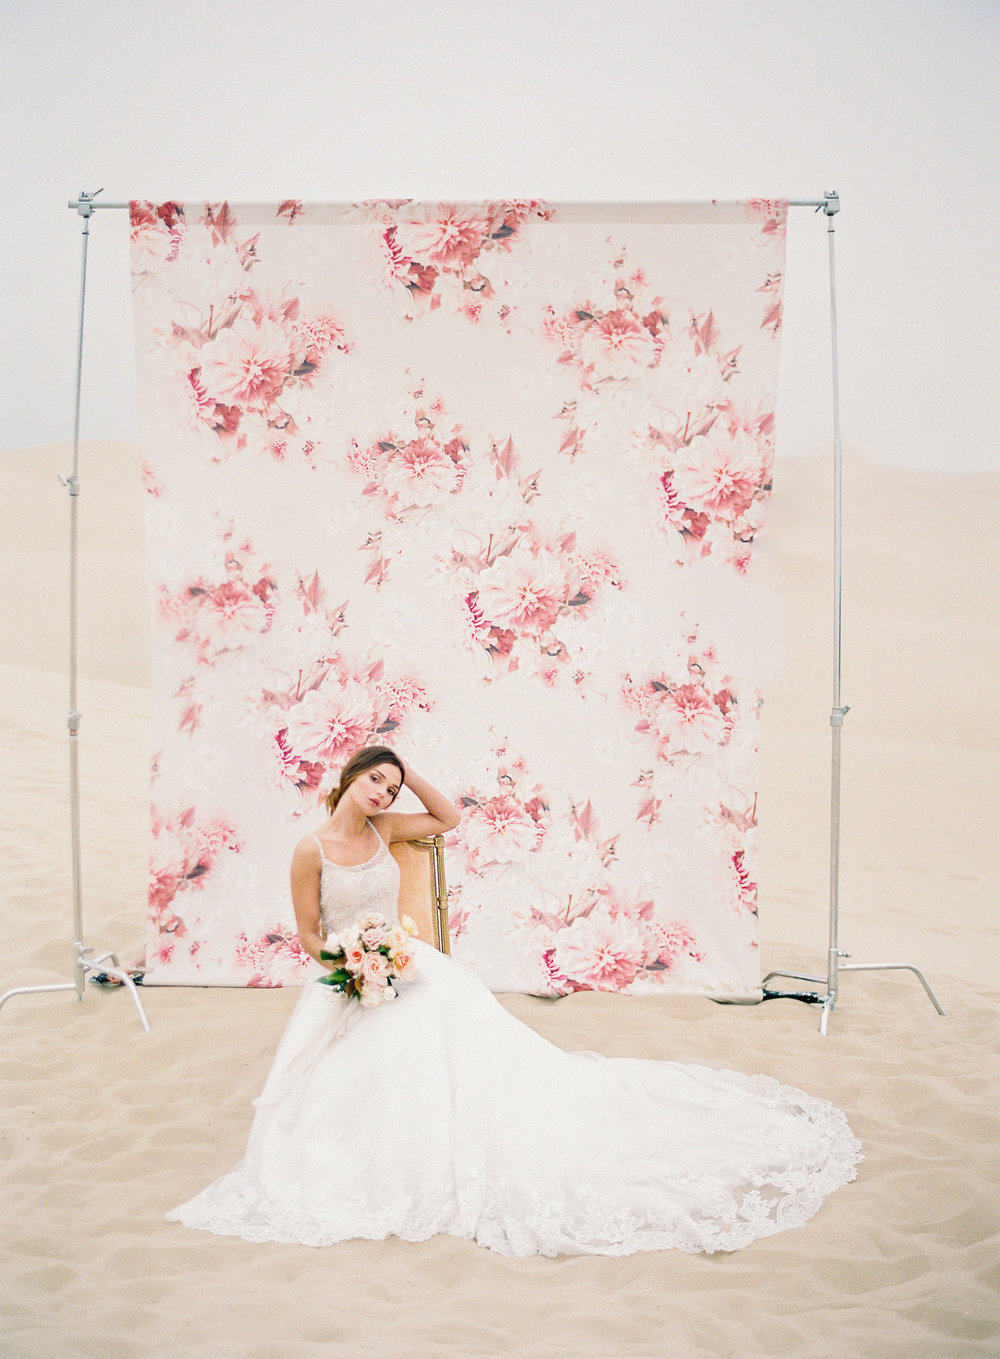 antoinette-photo-booth-backdrop-san-diego2.jpg